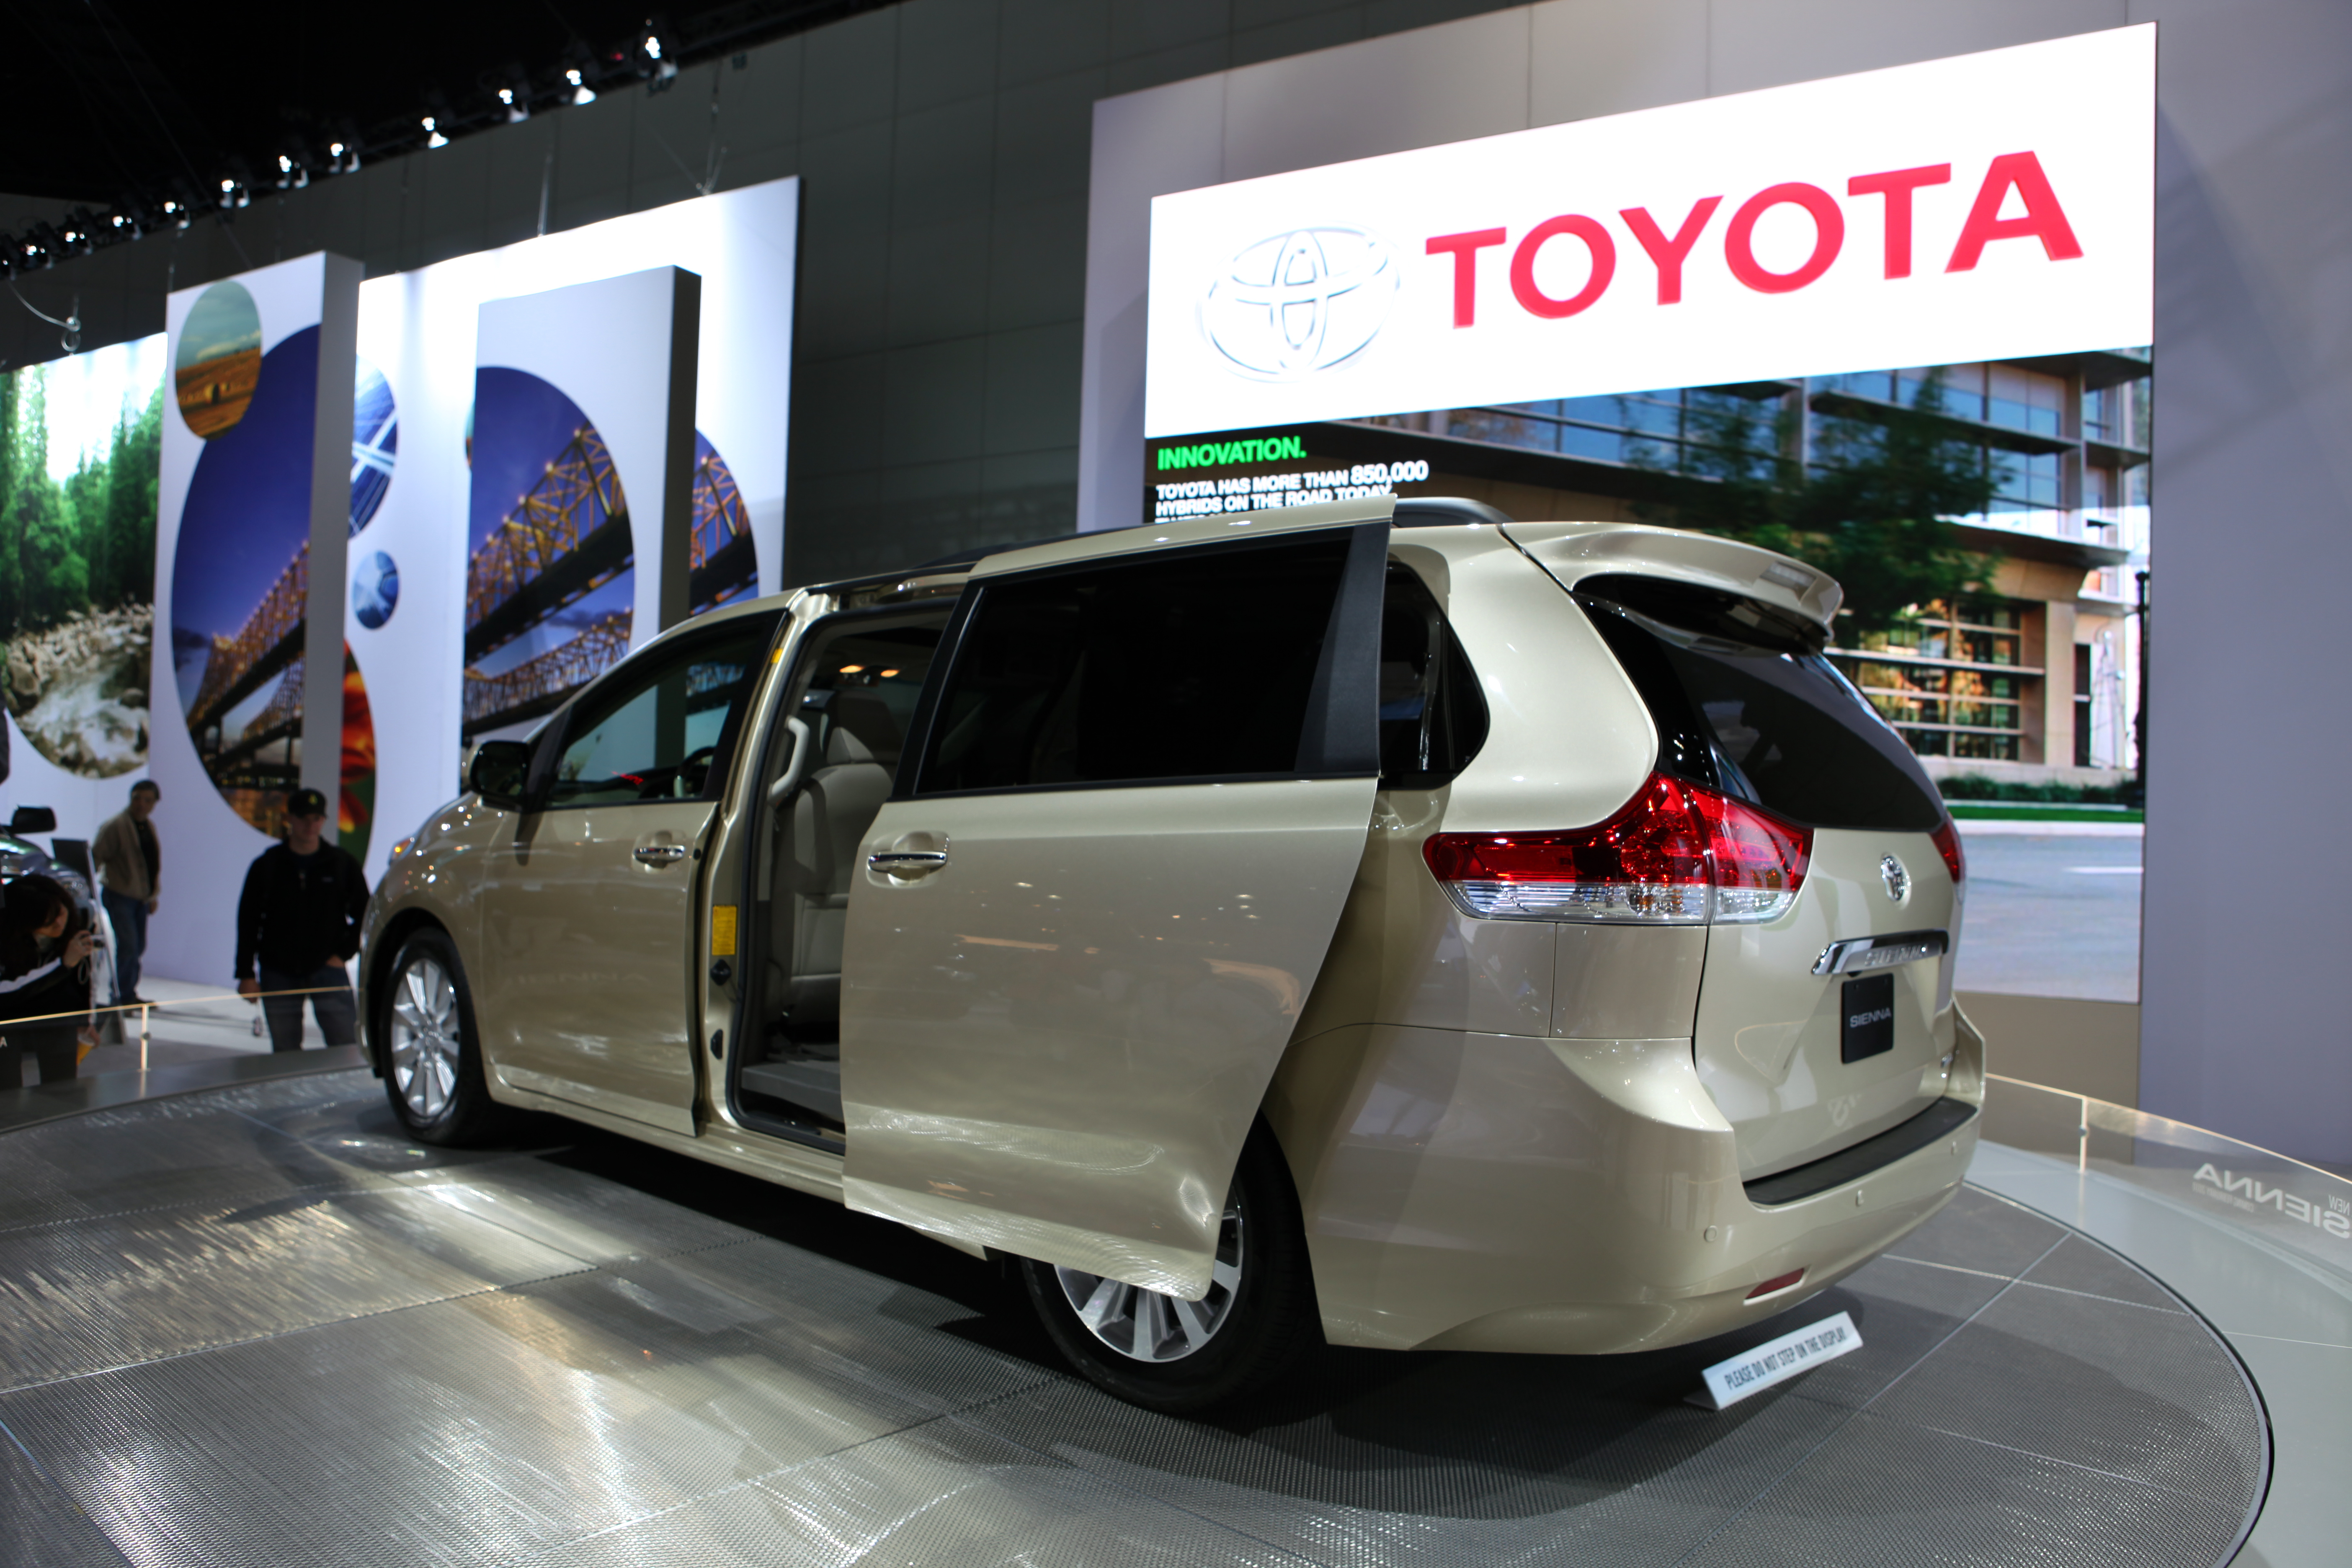 innovation in toyota If you ask experts in organizational innovation about toyota, you'll often see a bemused expression on their faces toyota is a bit hard to figure, innovation wise.